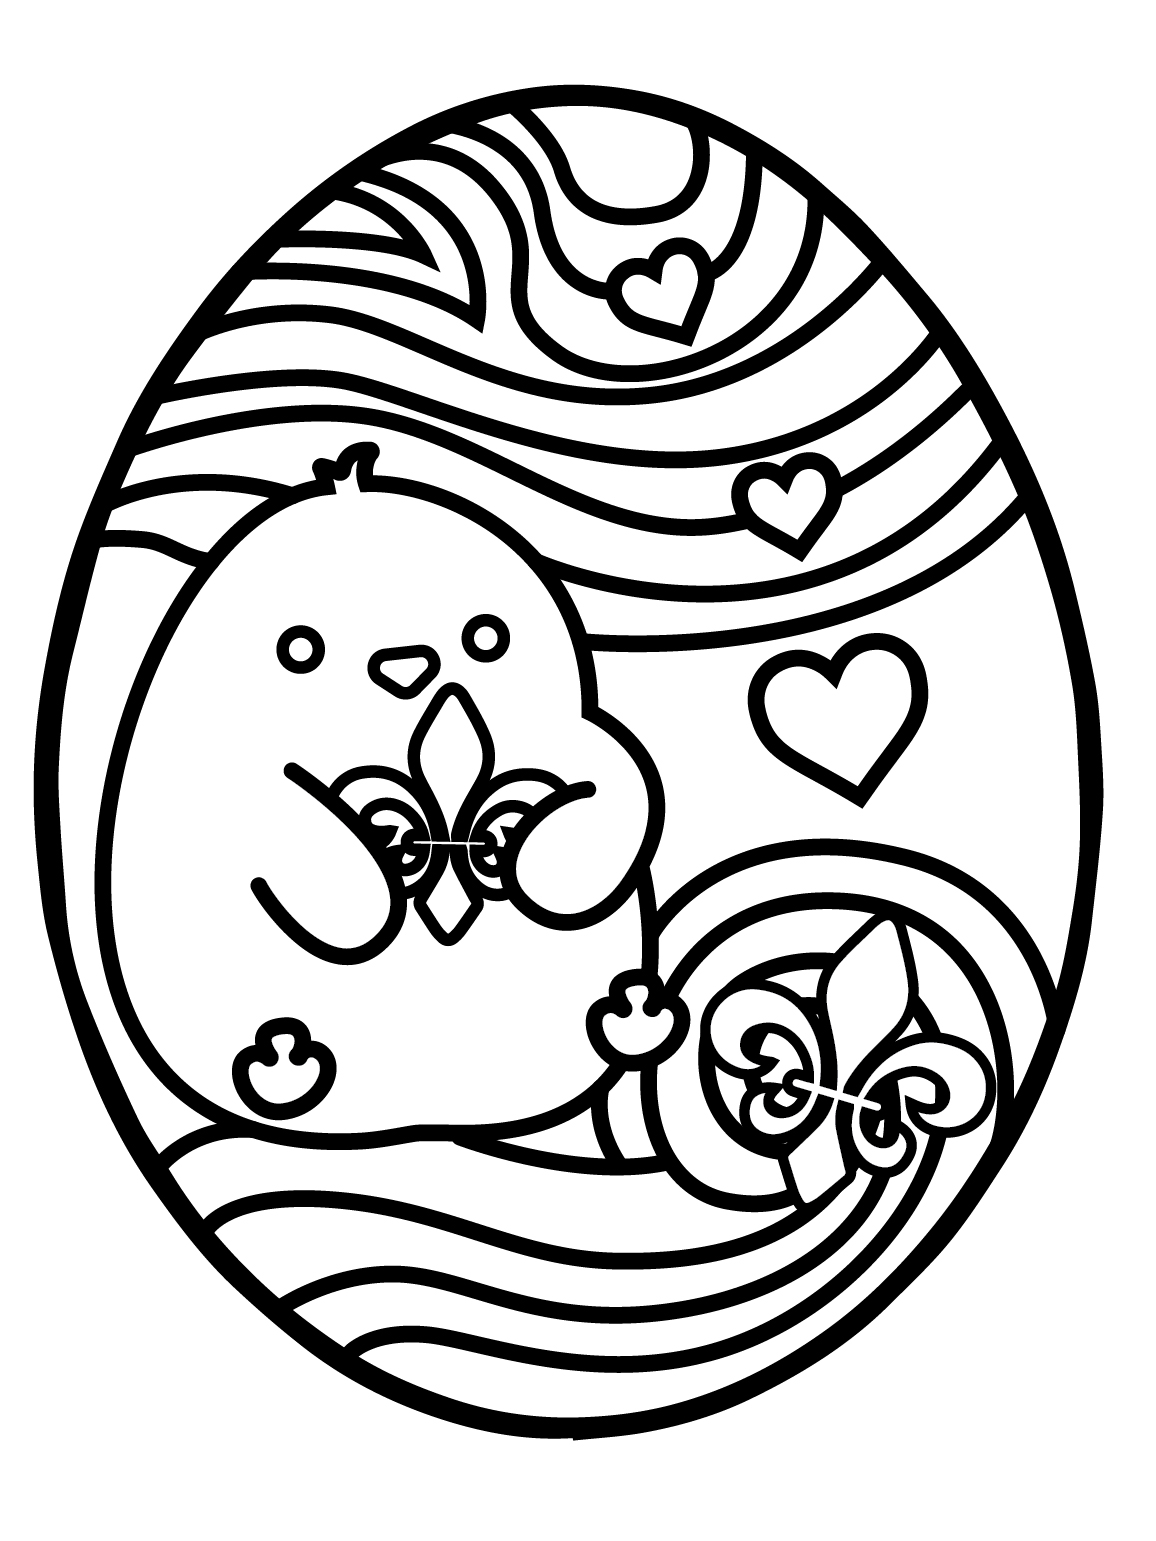 egg coloring page free printable easter egg coloring pages for kids page coloring egg